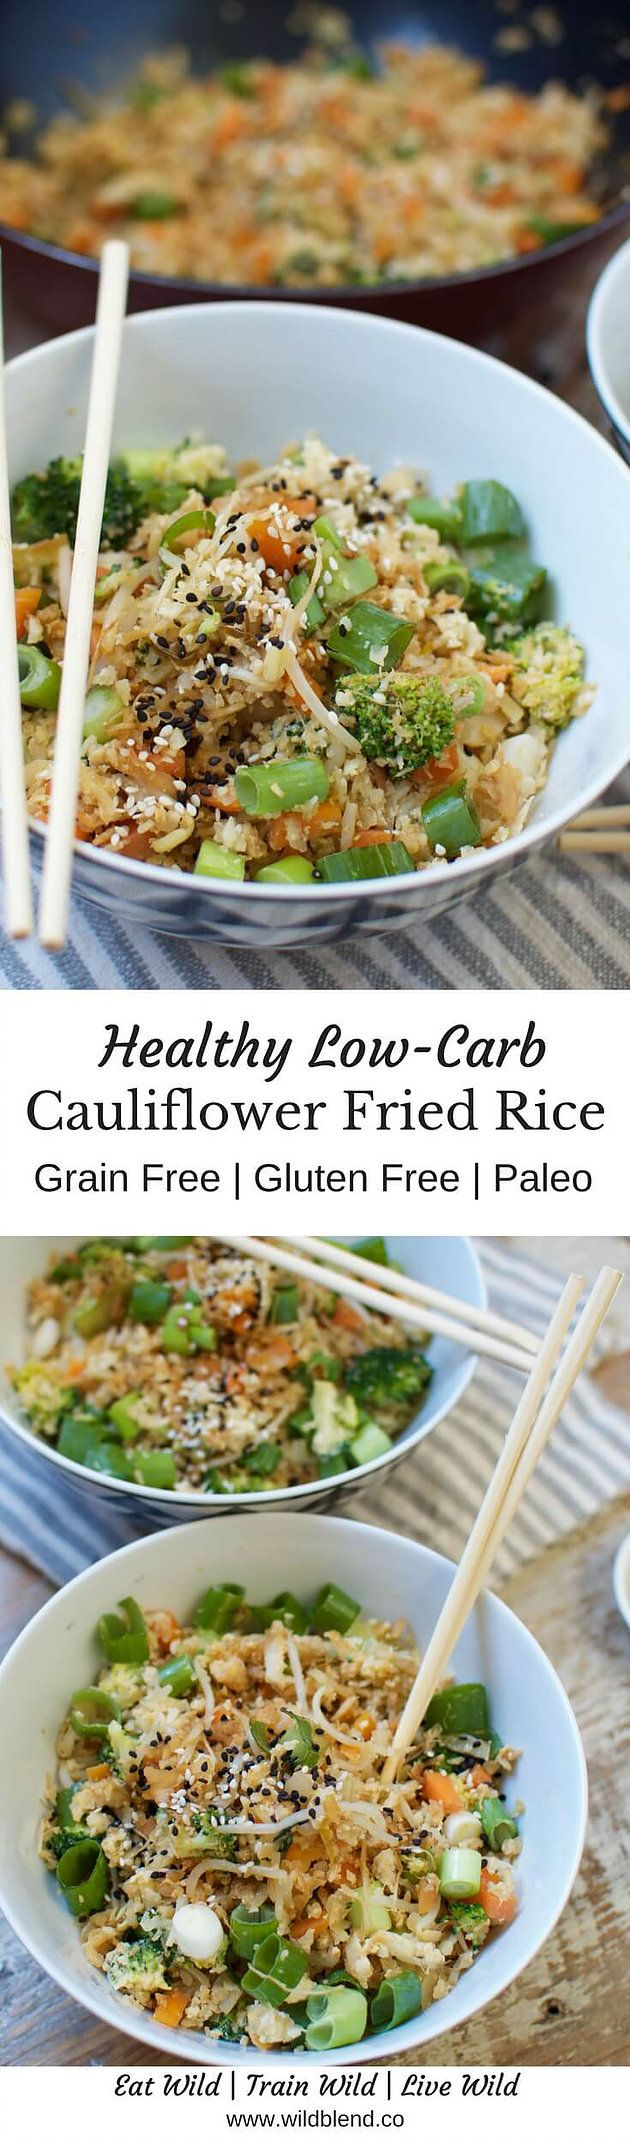 Get the full recipe here: This low-carb, veggie-packed Cauliflower Fried Rice is a healthy Paleo-friendly alternative to classic Asian fried rice. http://www.wildblend.co/single-post/2016/10/10/Cauliflower-Fried-Rice (Paleo Diet Macros)